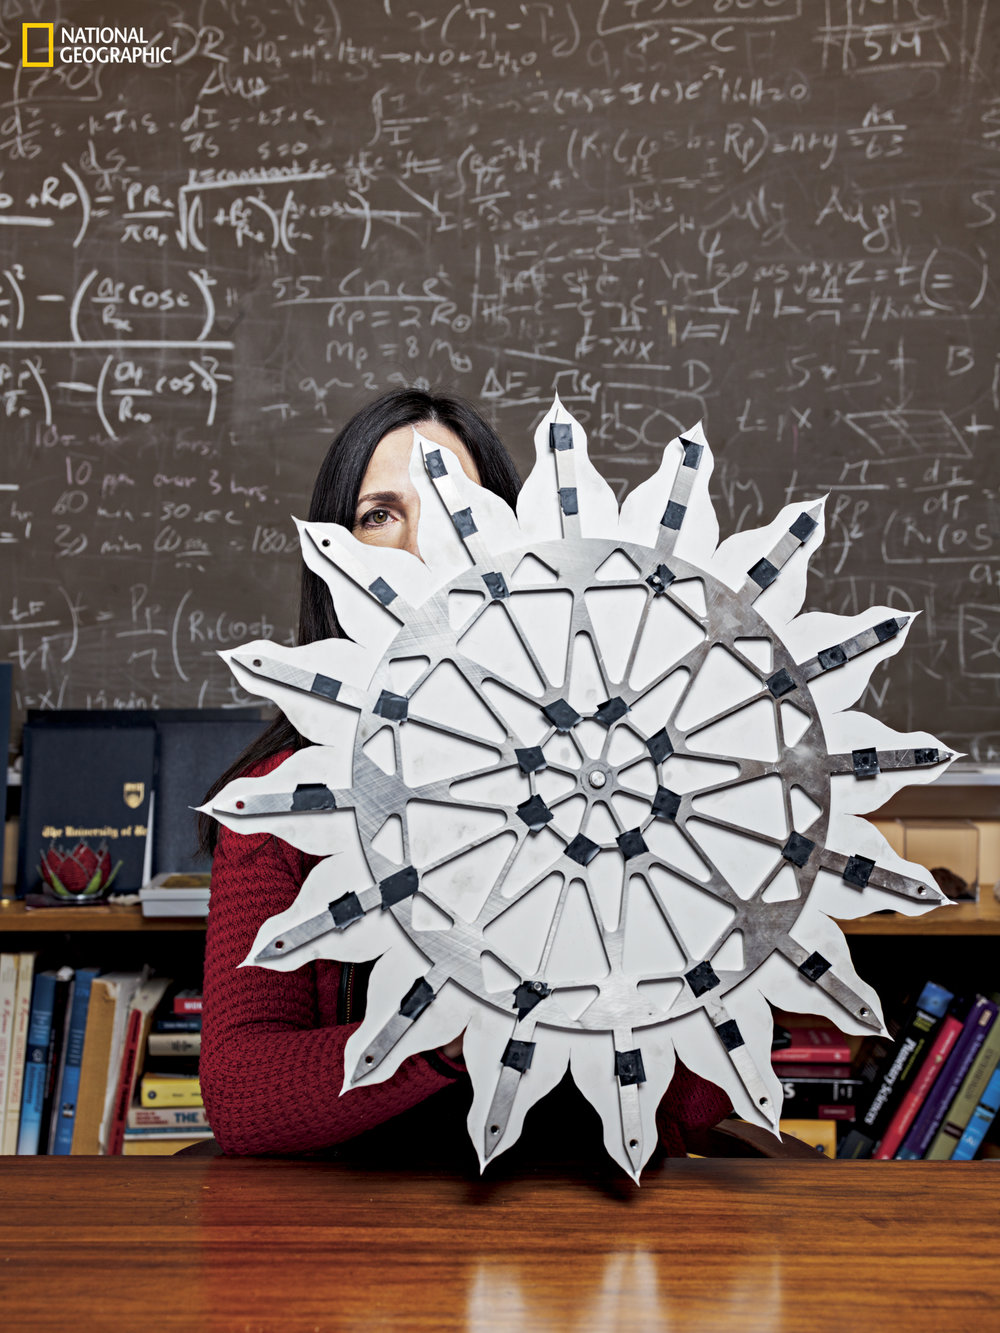 Dr. Seager explains how she and other astronomers are looking for extraterrestrial life. We discuss the Drake and Seager equations. We also talk about how astronomers might be able to detect life by measuring chemicals in distant planet atmospheres.    Image:  Using a model, MIT astrophysicist Sara Seager demonstrates Starshade, under development at NASA's Jet Propulsion Lab in Pasadena, California. Deployed in space, the device, more than 100 feet in diameter, would block the light from a star. A space telescope would capture an image of a planet when it's between Starshade's petals, seeking evidence that life may exist on the planet.  (PHOTOGRAPH BY SPENCER LOWELL / NATIONAL GEOGRAPHIC)